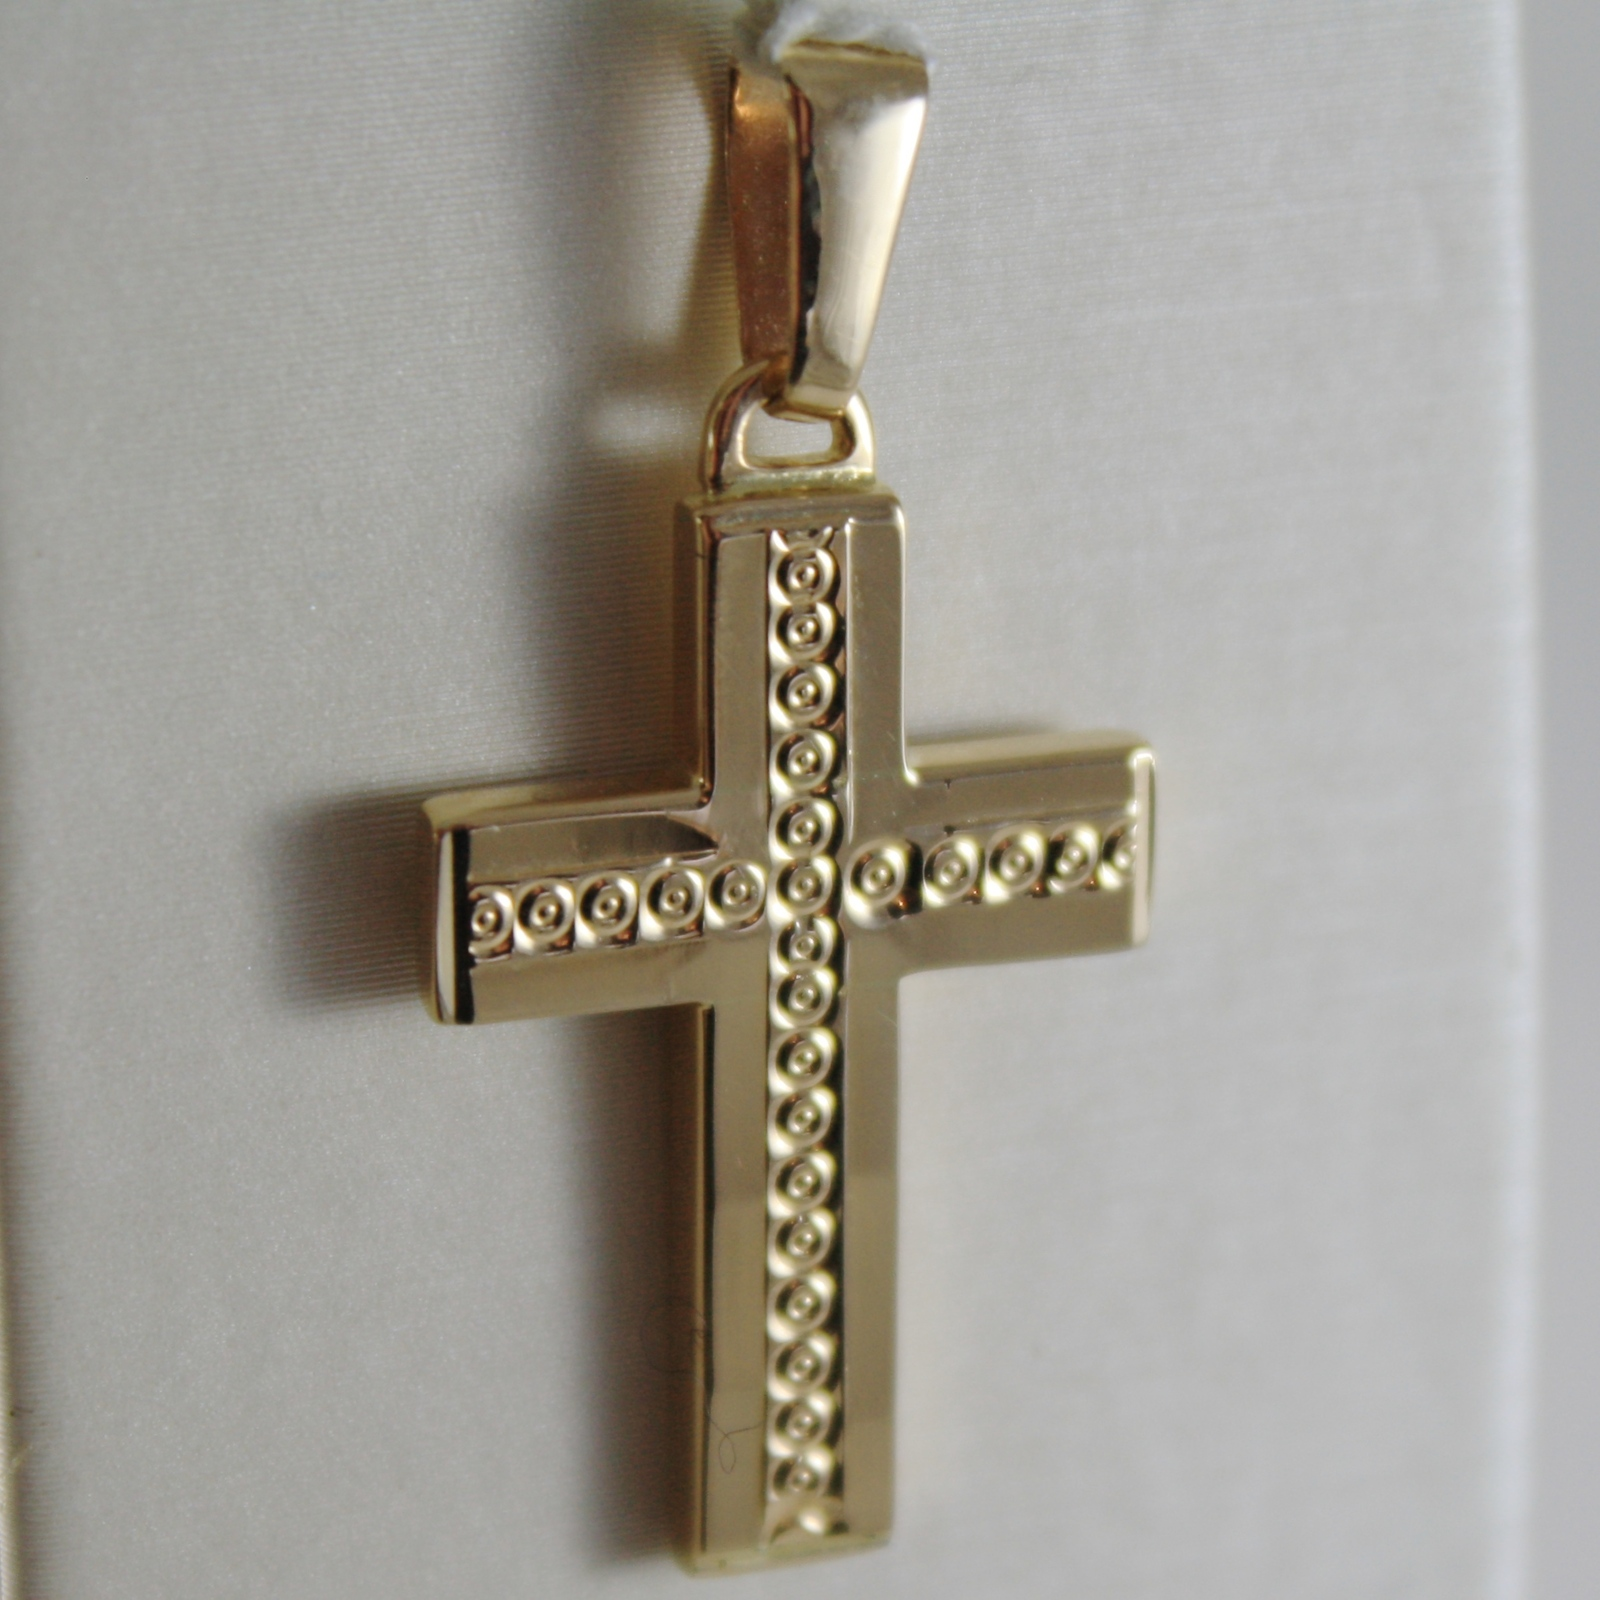 SOLID 18K YELLOW GOLD CROSS, SQUARED, DOUBLE TWO FACES, CIRCLES, MADE IN ITALY